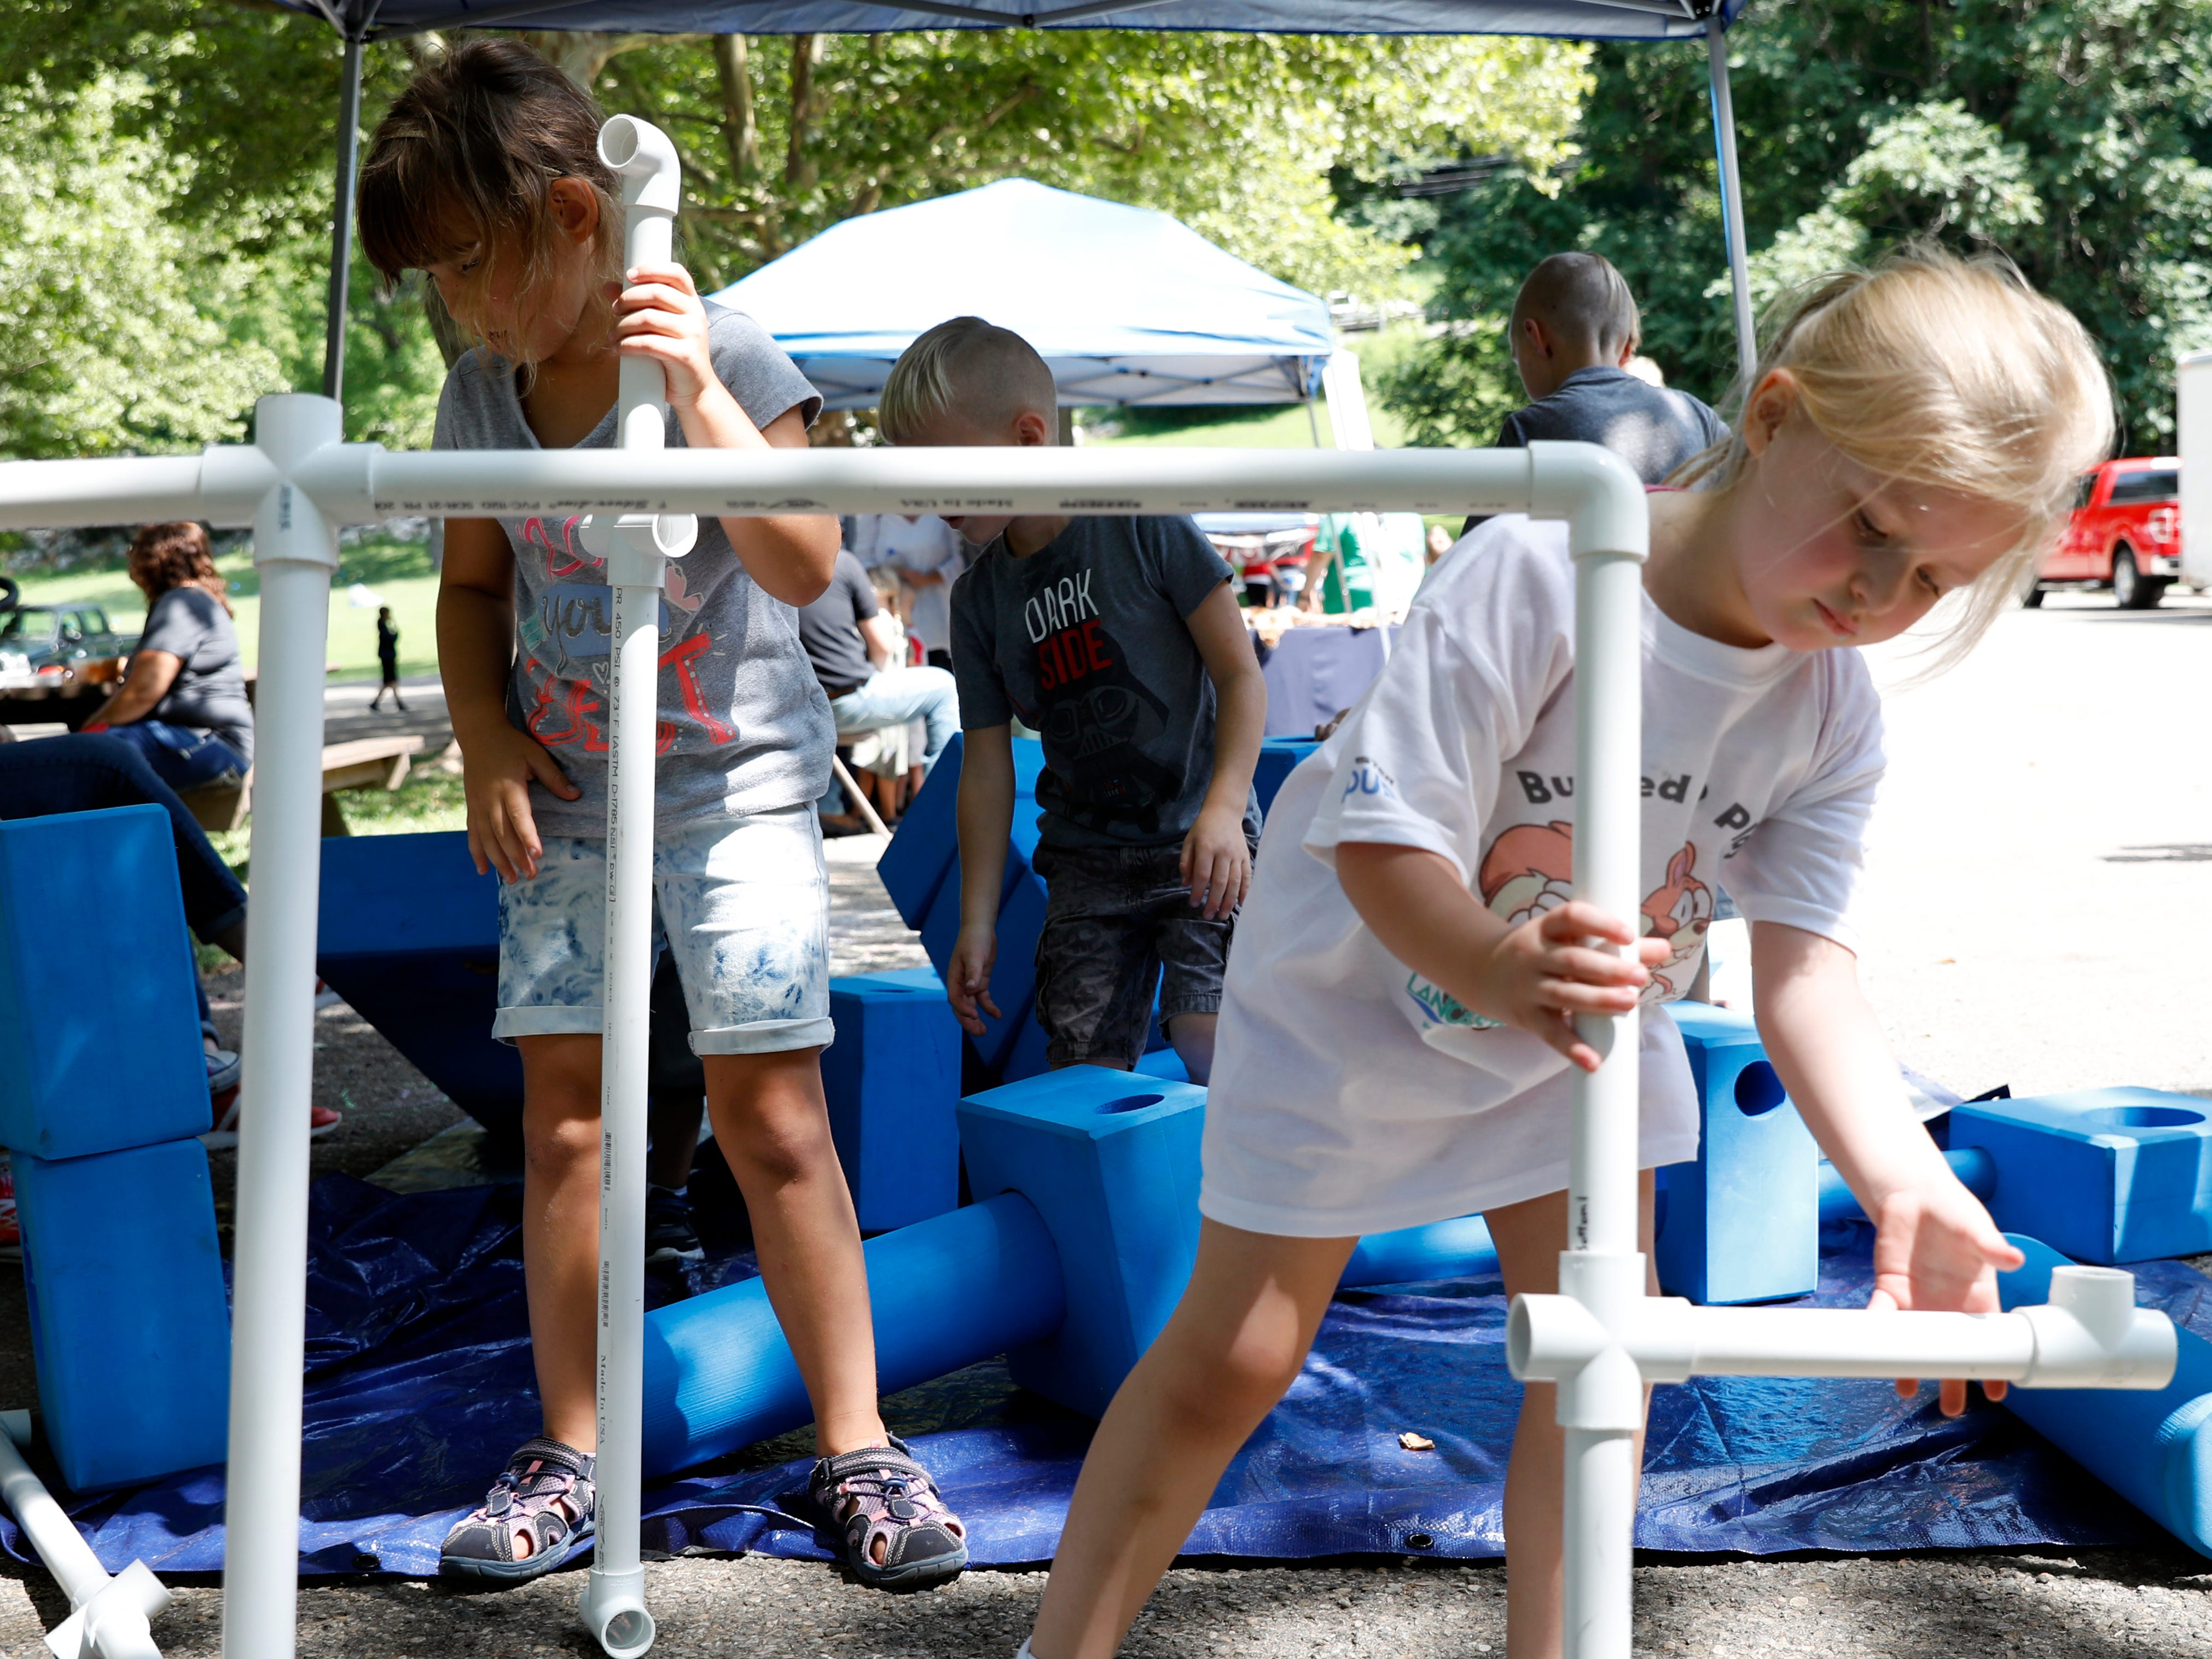 Vanessa Solt, 7, and Olivia Heston, 5, right, fit together pieces of plastic pipe Thursday, July 26, 2018, at Rising Park in Lancaster. Solt and Heston were playing at the AHA! Children's Museum tent during the Lancaster Festival's Rising Park Day.